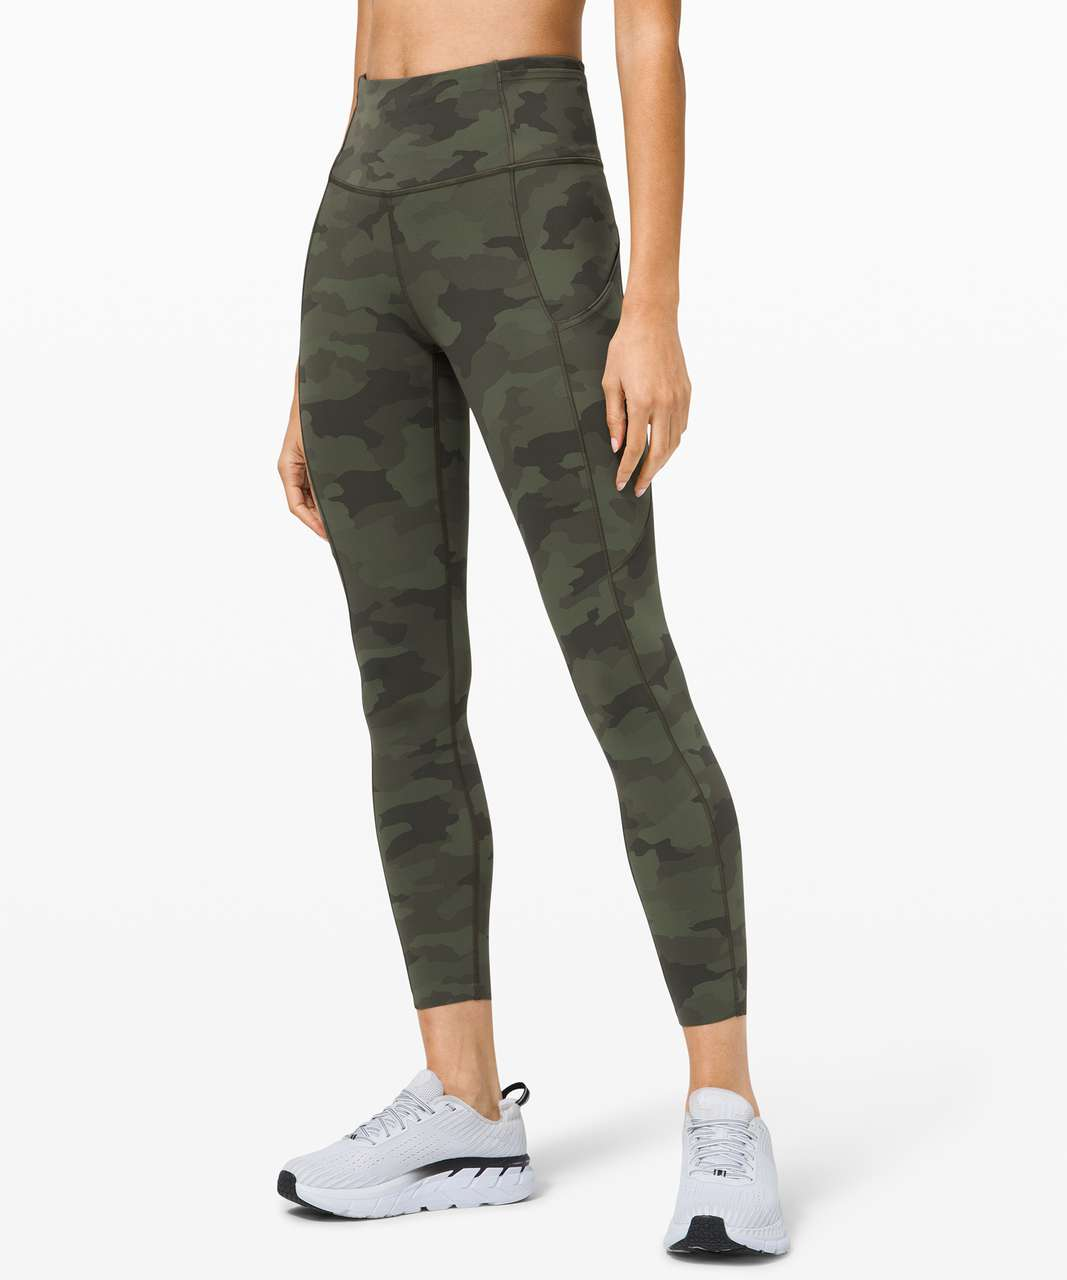 "Lululemon Fast and Free Tight II 25"" *Non-Reflective Nulux - Heritage 365 Camo Green Twill Multi"